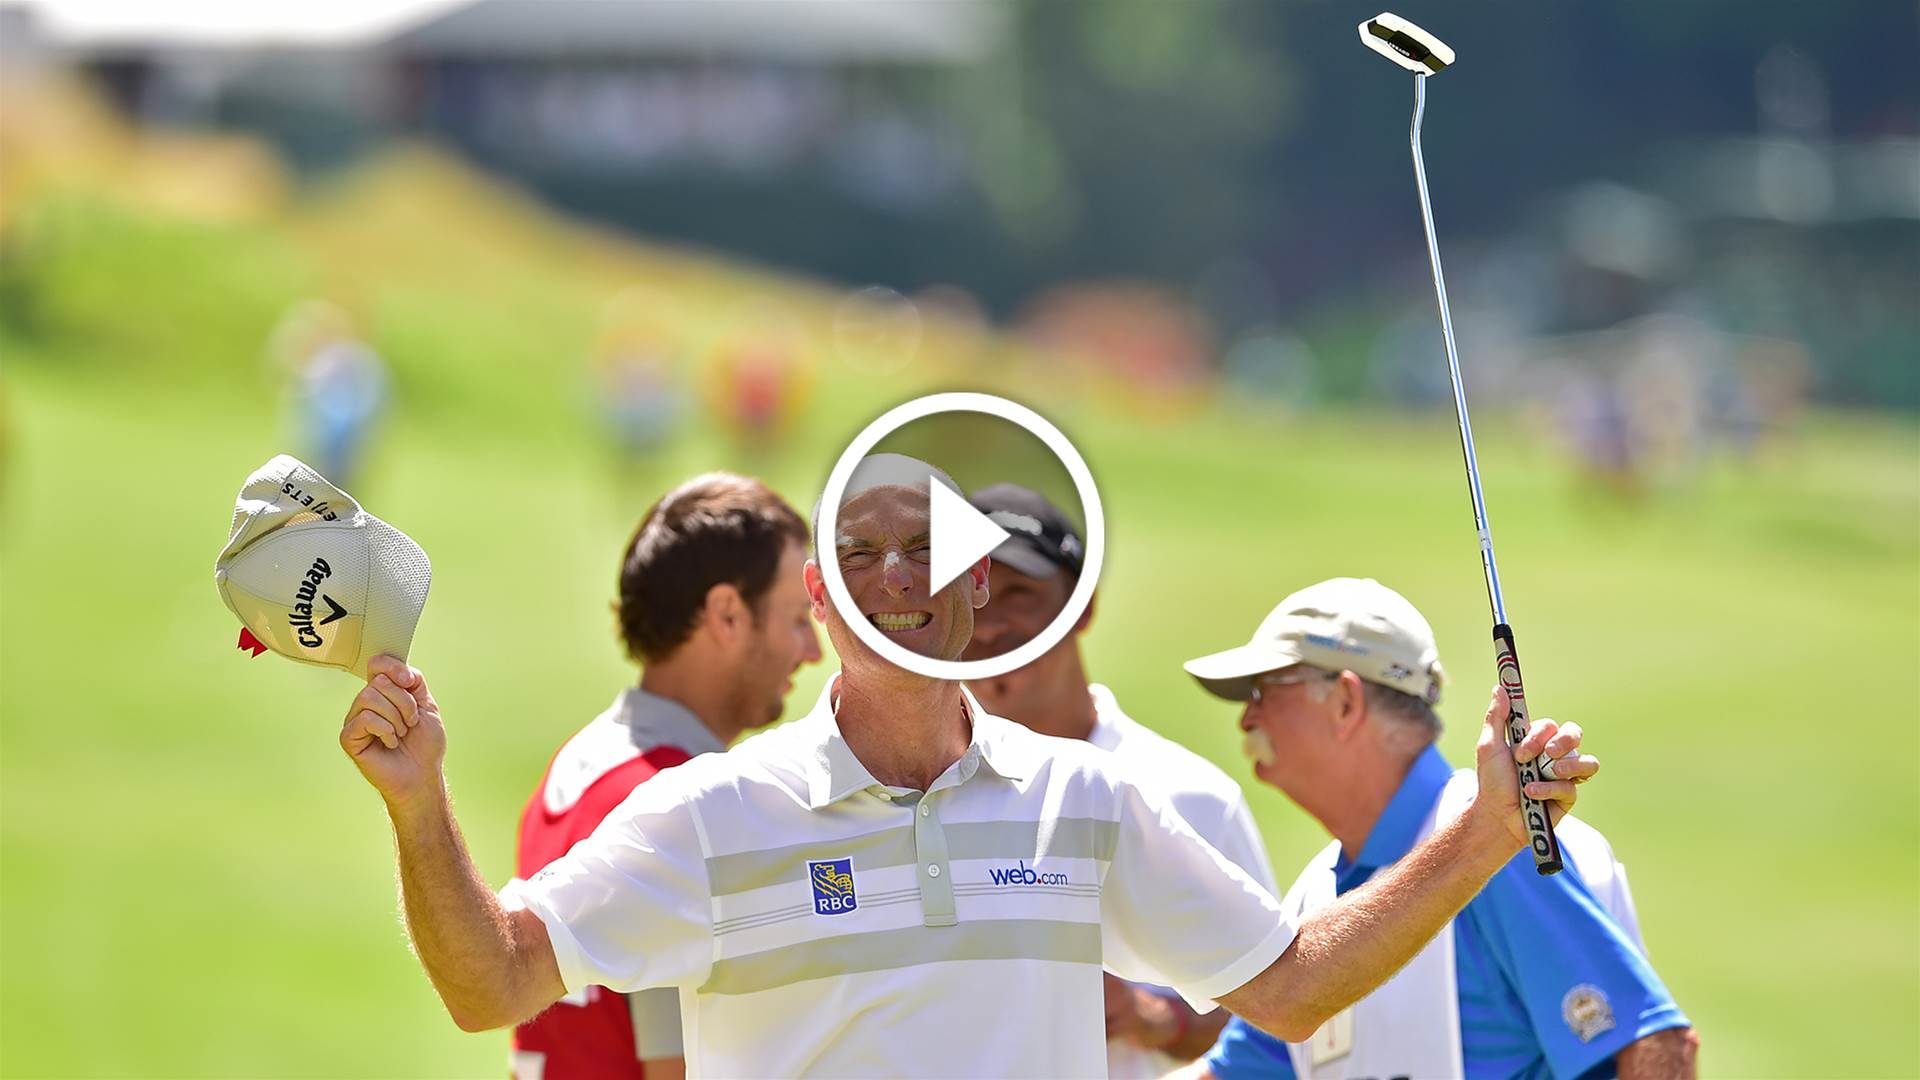 VIDEO: Furyk's record 58, how he did it